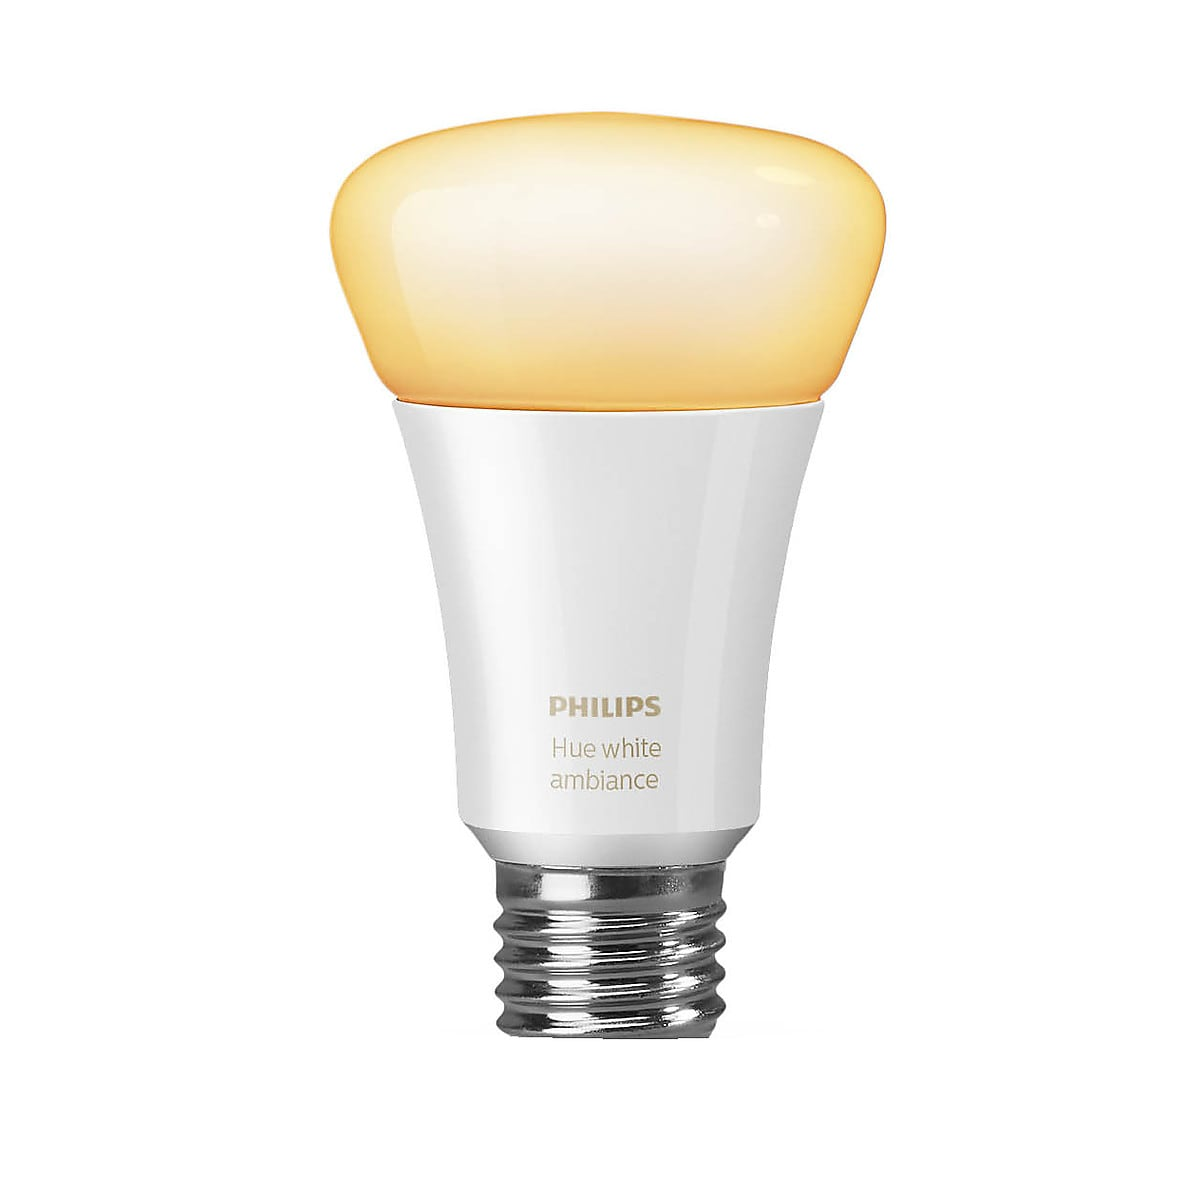 Philips Hue Ambiance LED-lampa 9,5 W E27